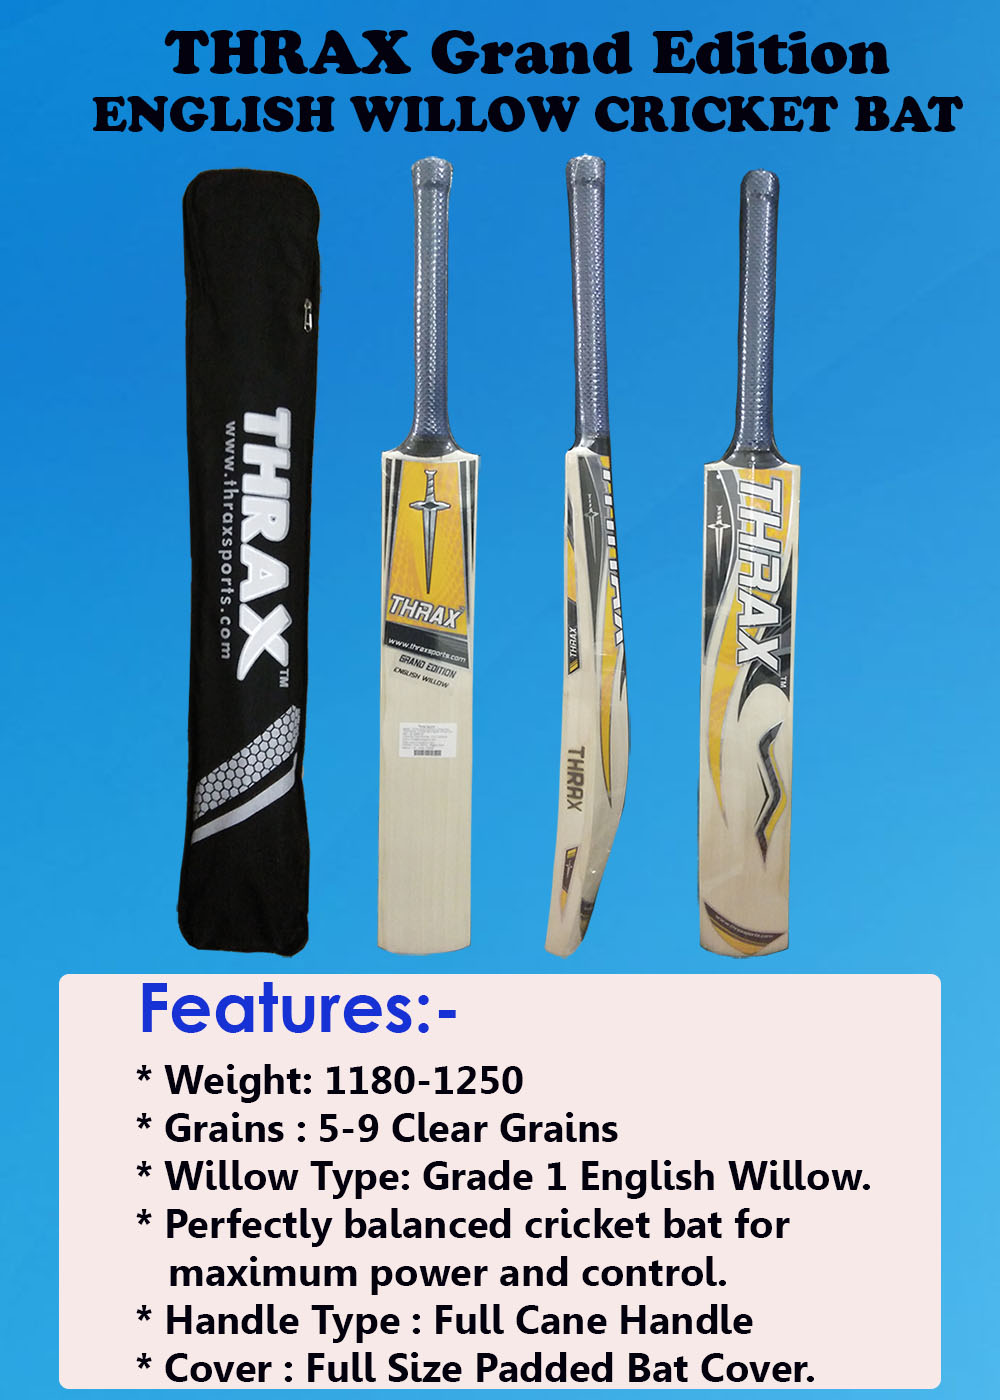 THRAX GRAND EDITION CRICKET BAT